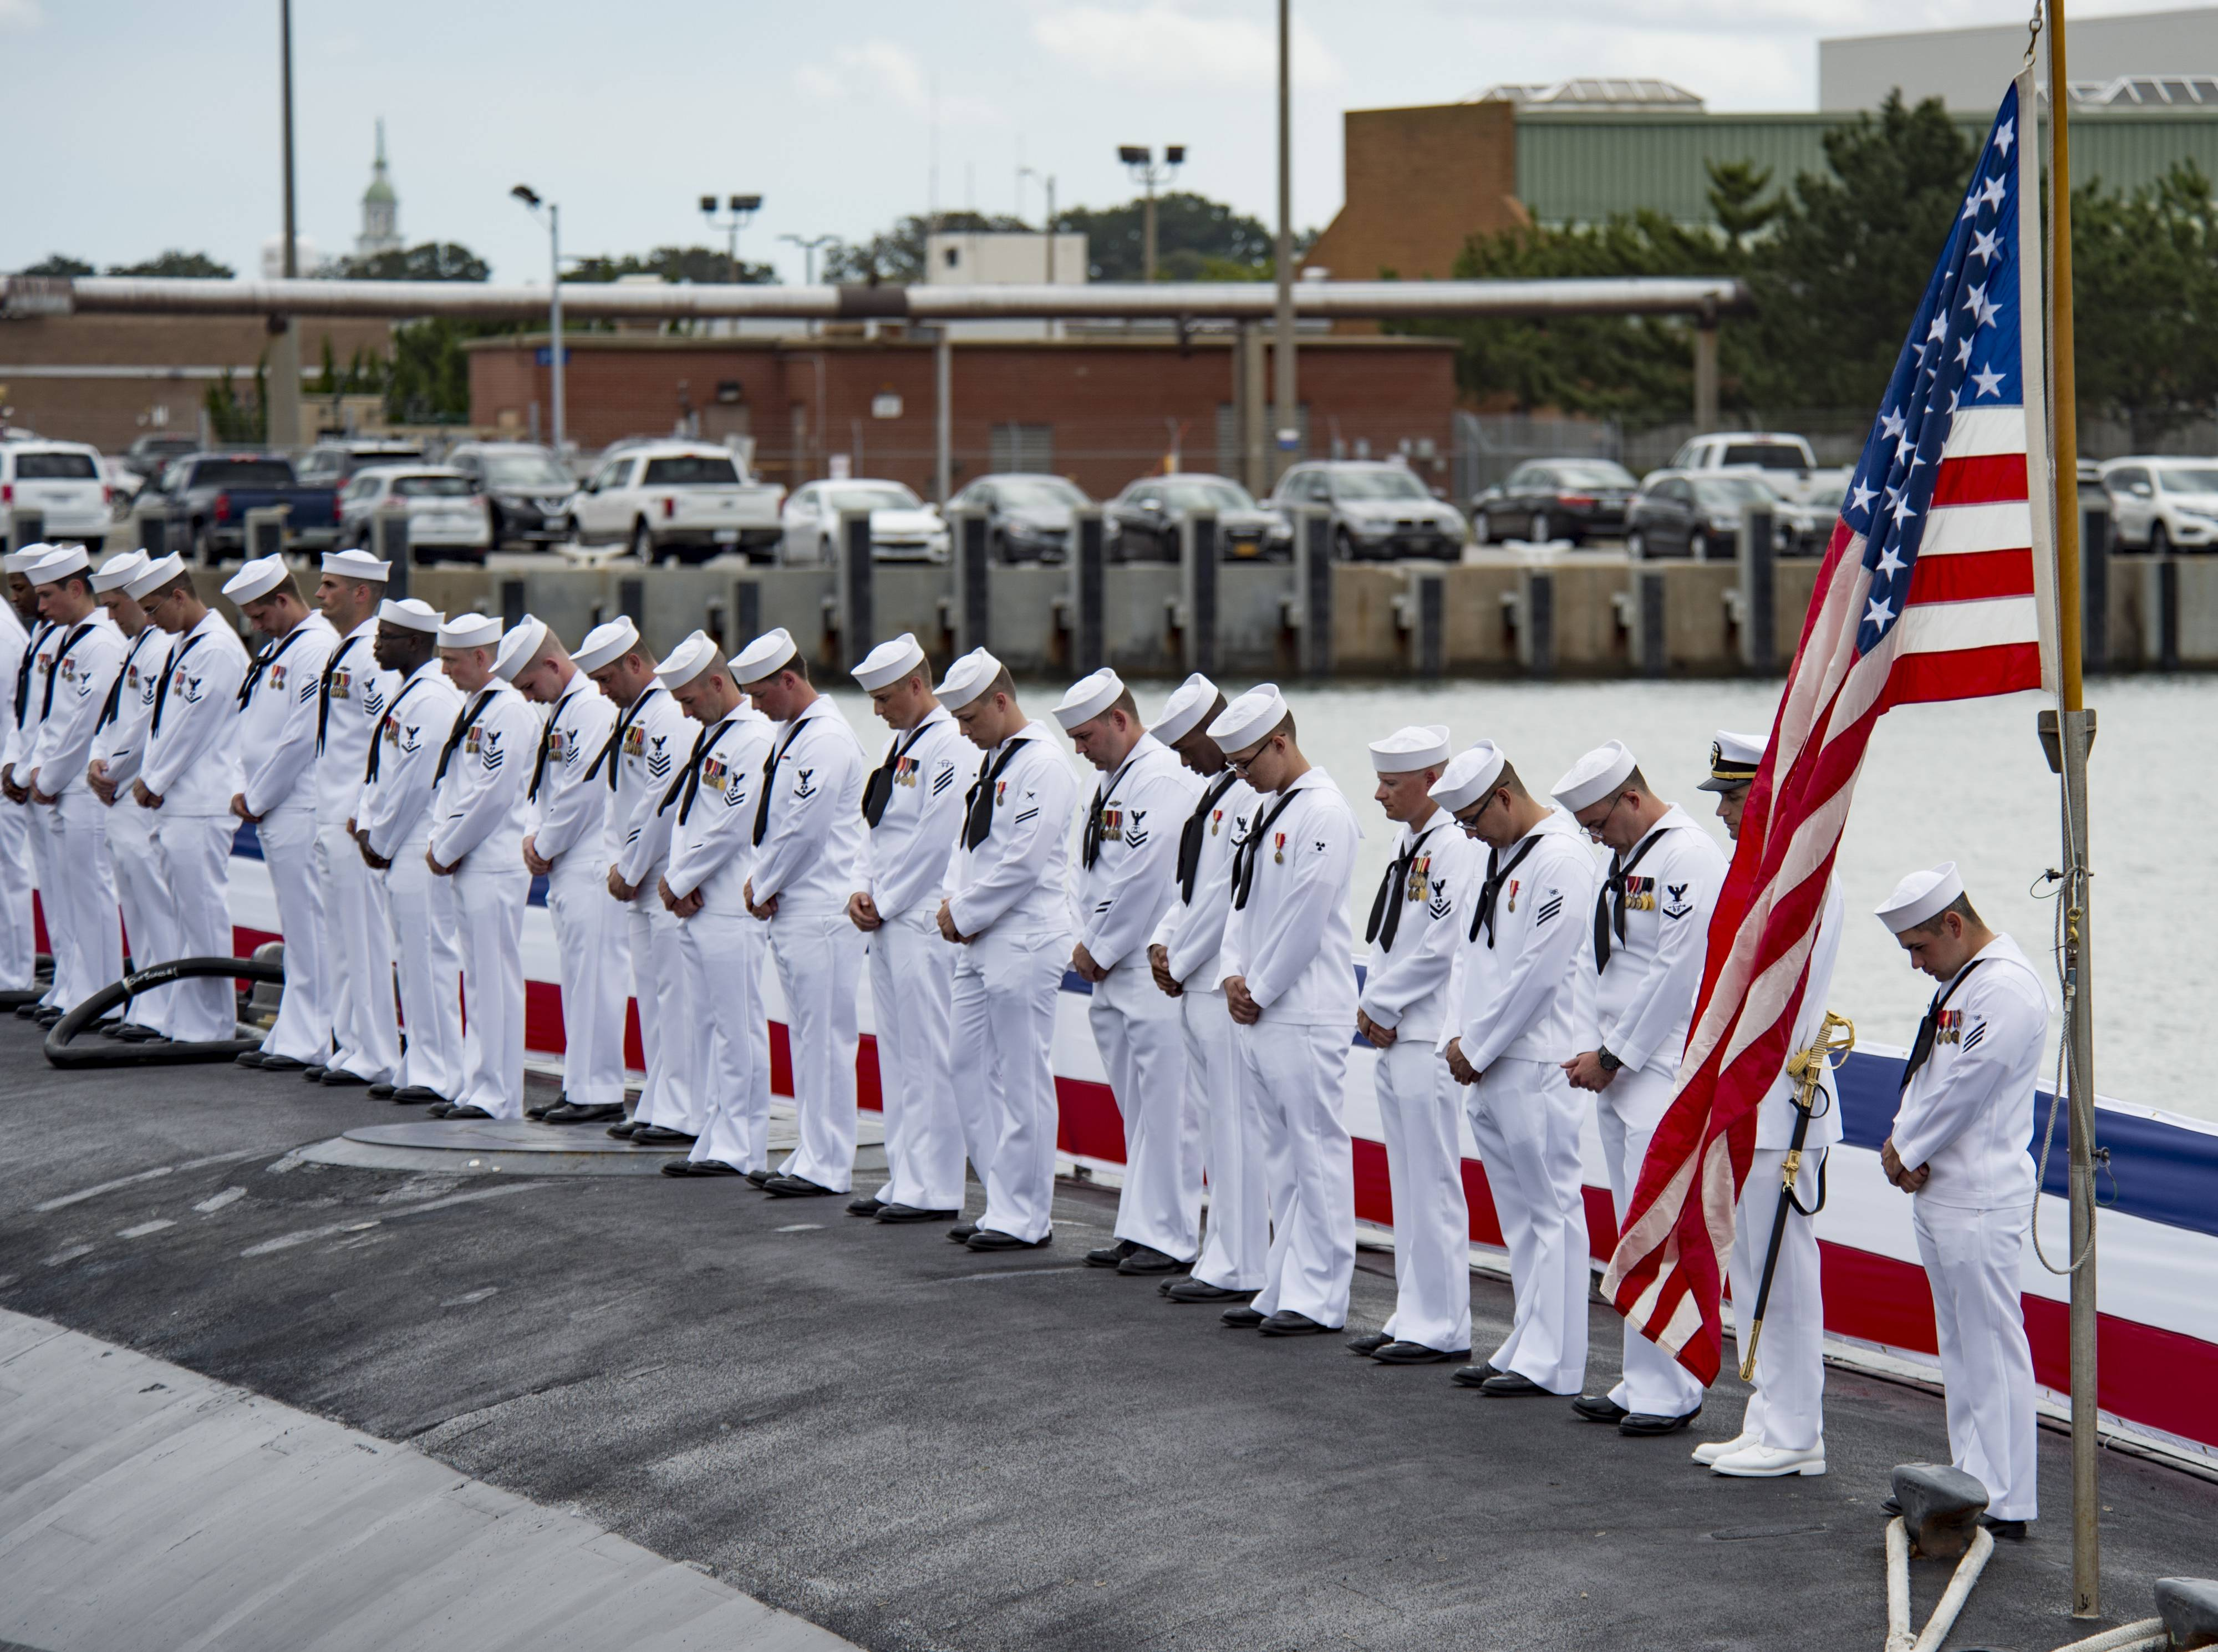 Sailors render a salute during the commissioning ceremony for the Virginia Class Submarine USS Washington at Naval Station Norfolk